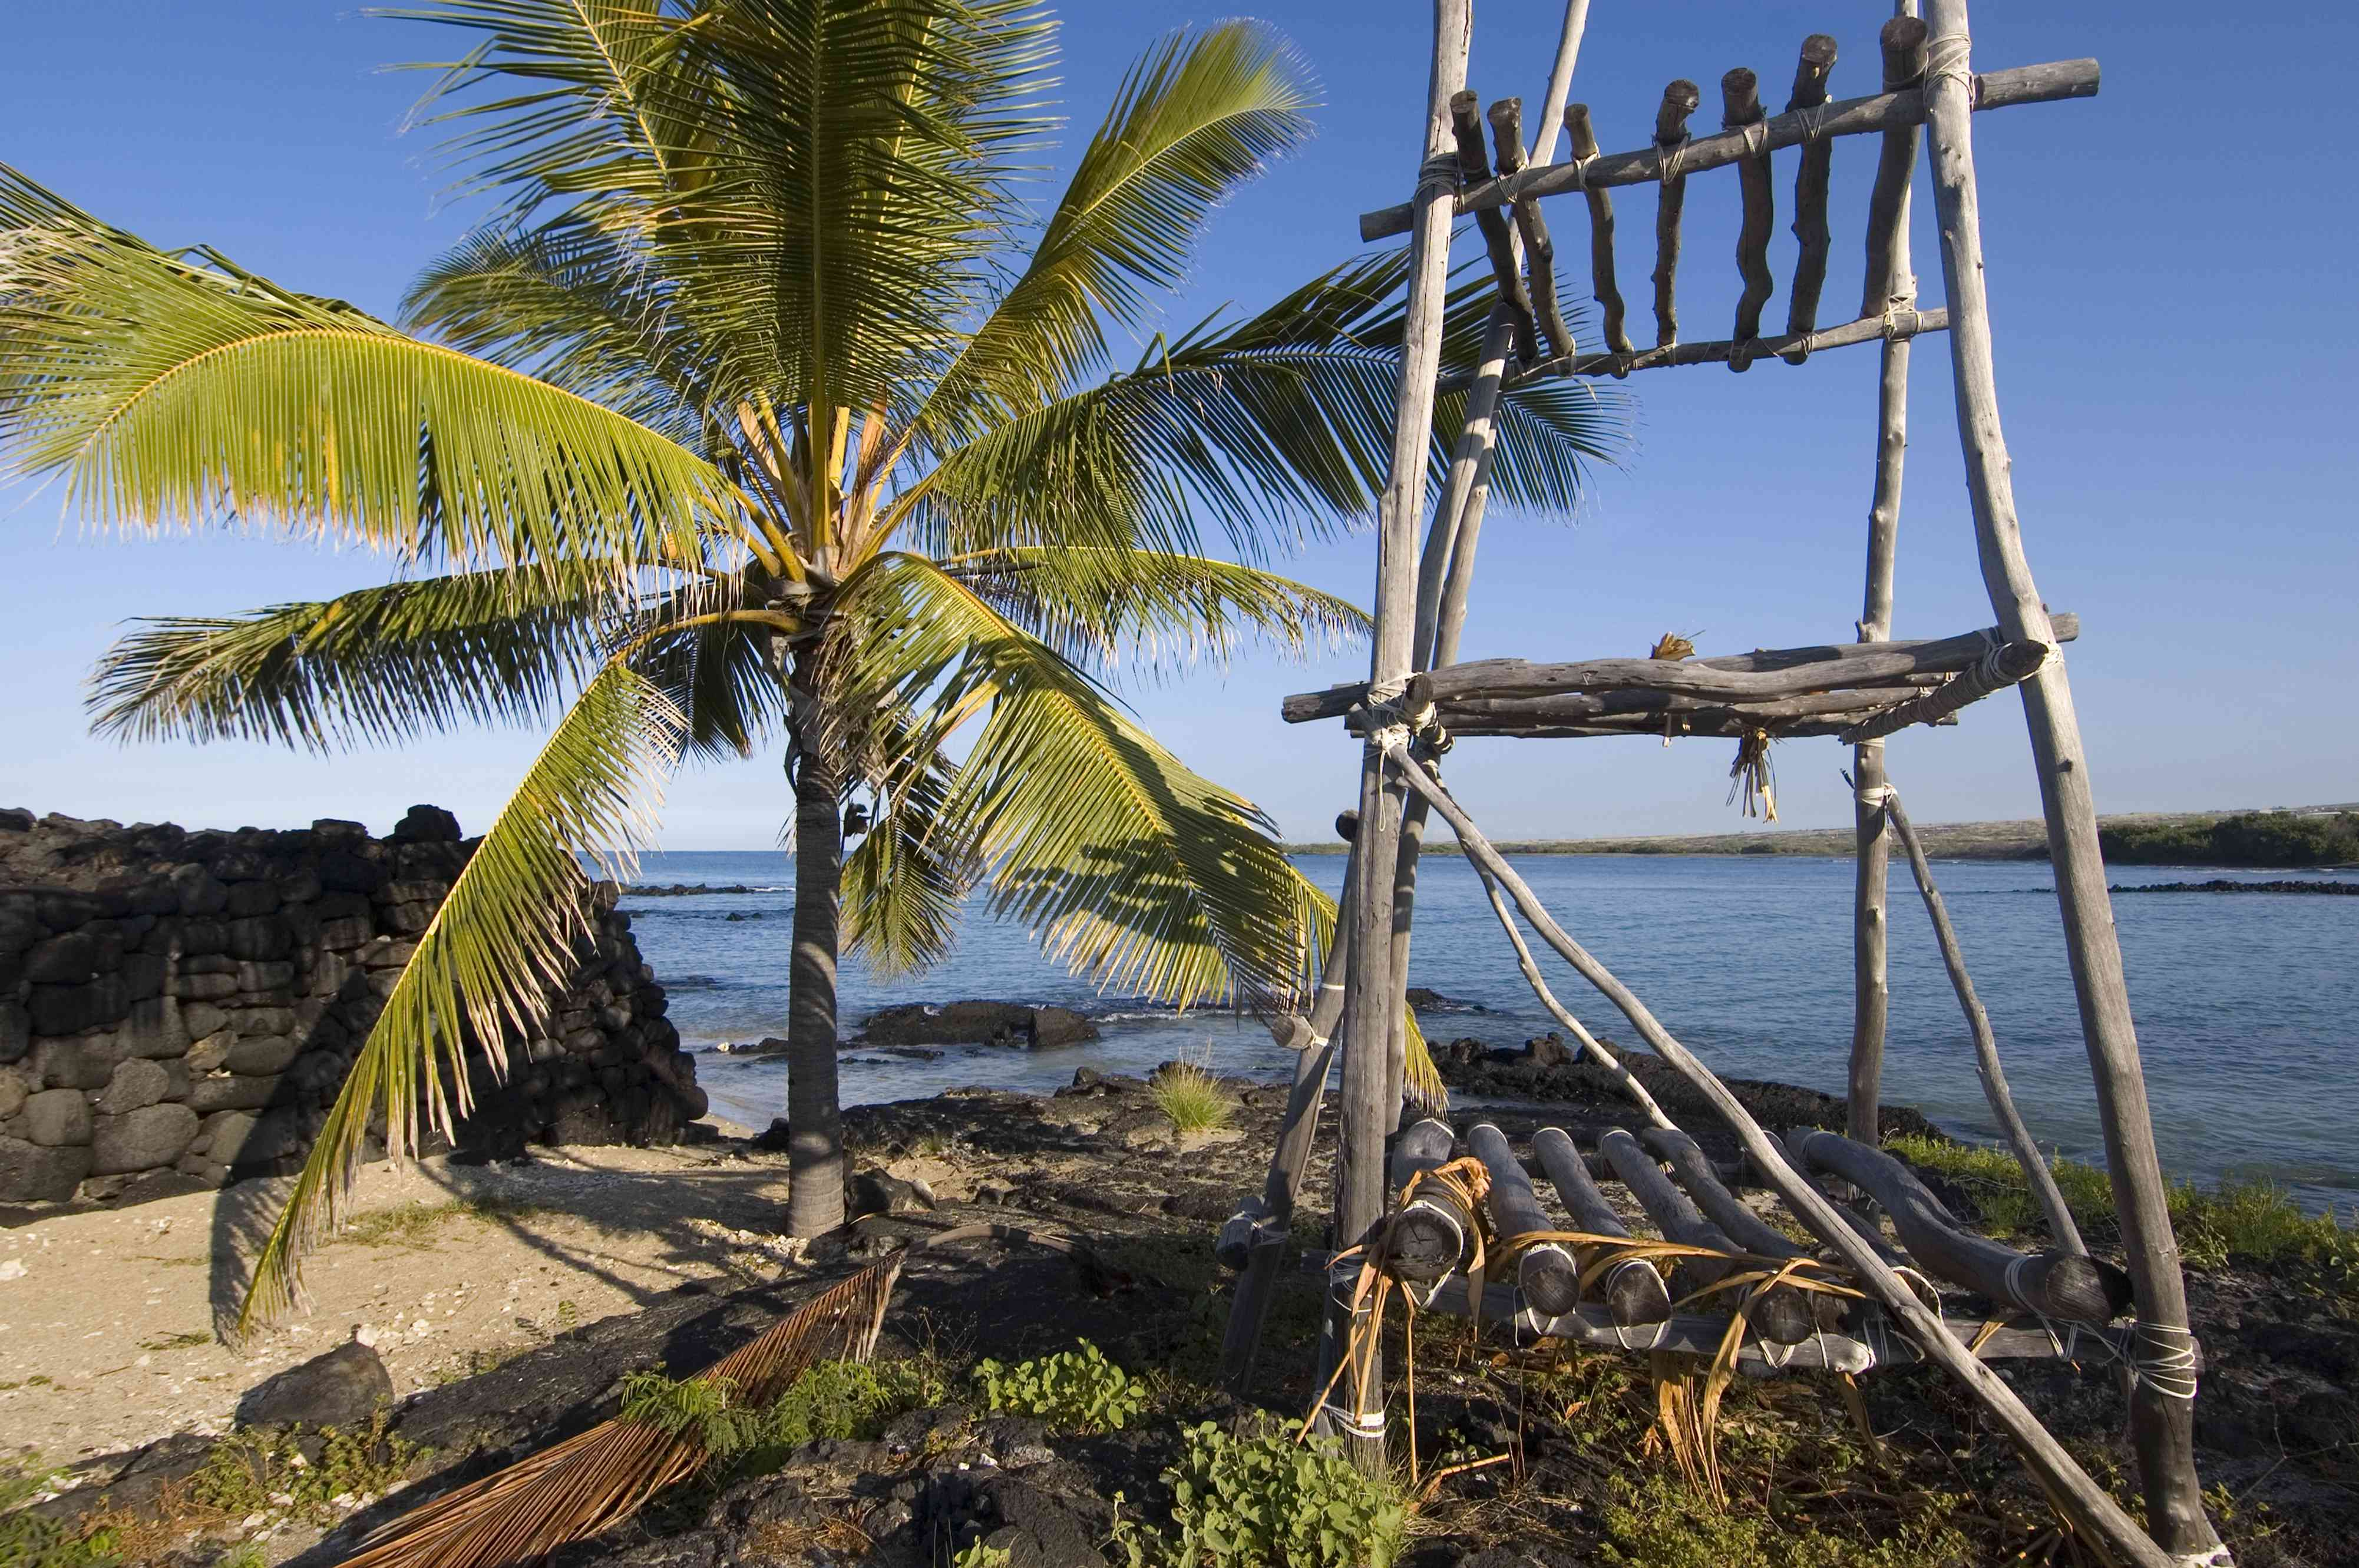 Heiau with tower of offerings.